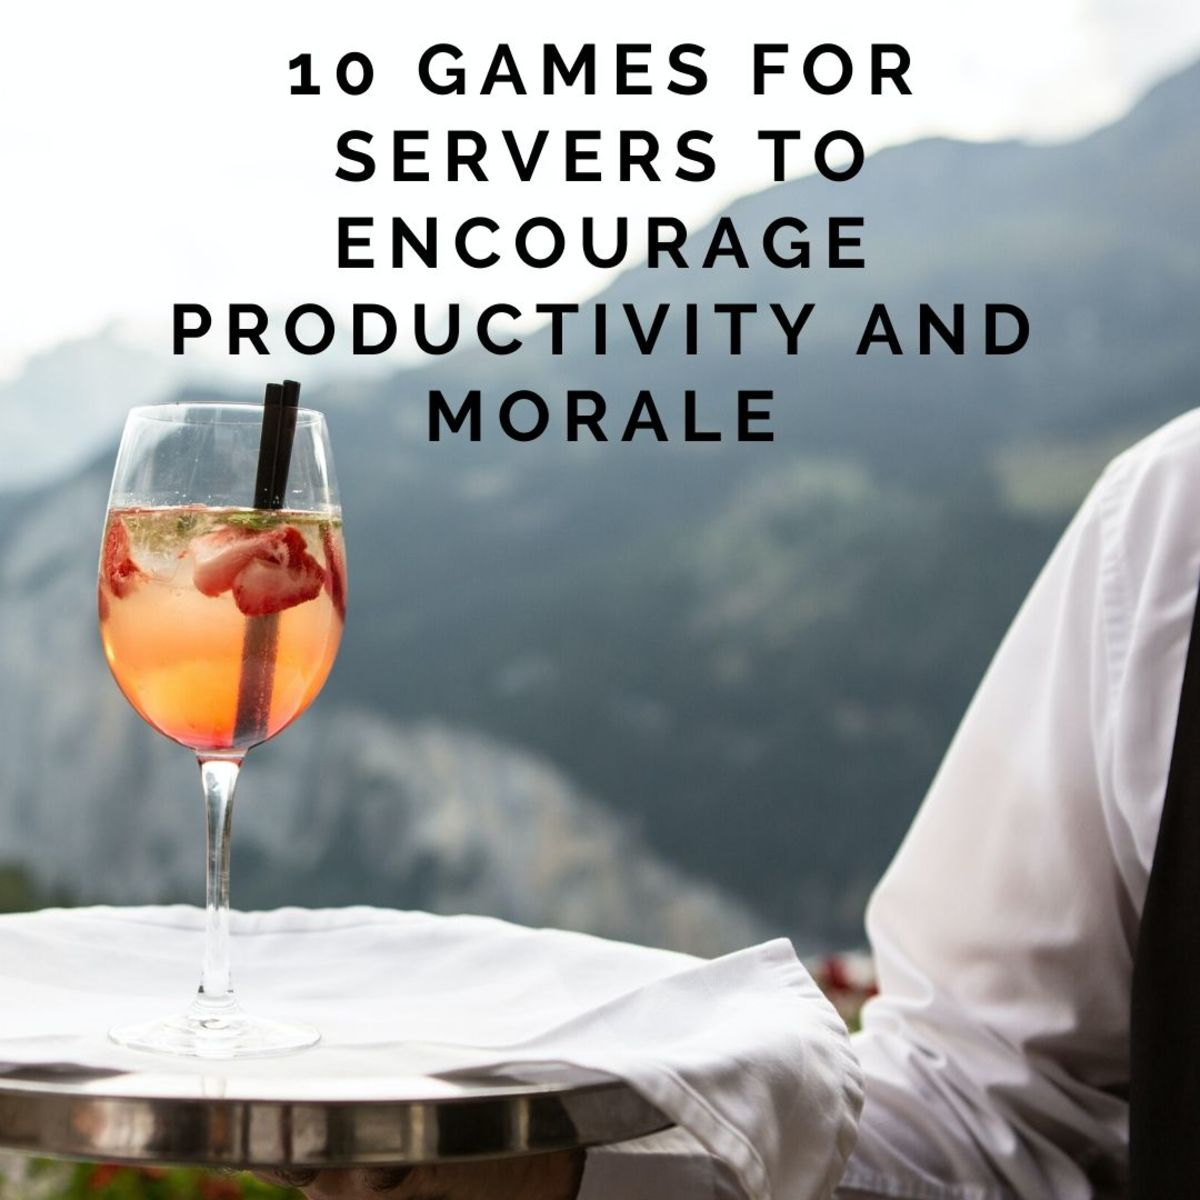 These 10 games will help boost both sales and employee morale.